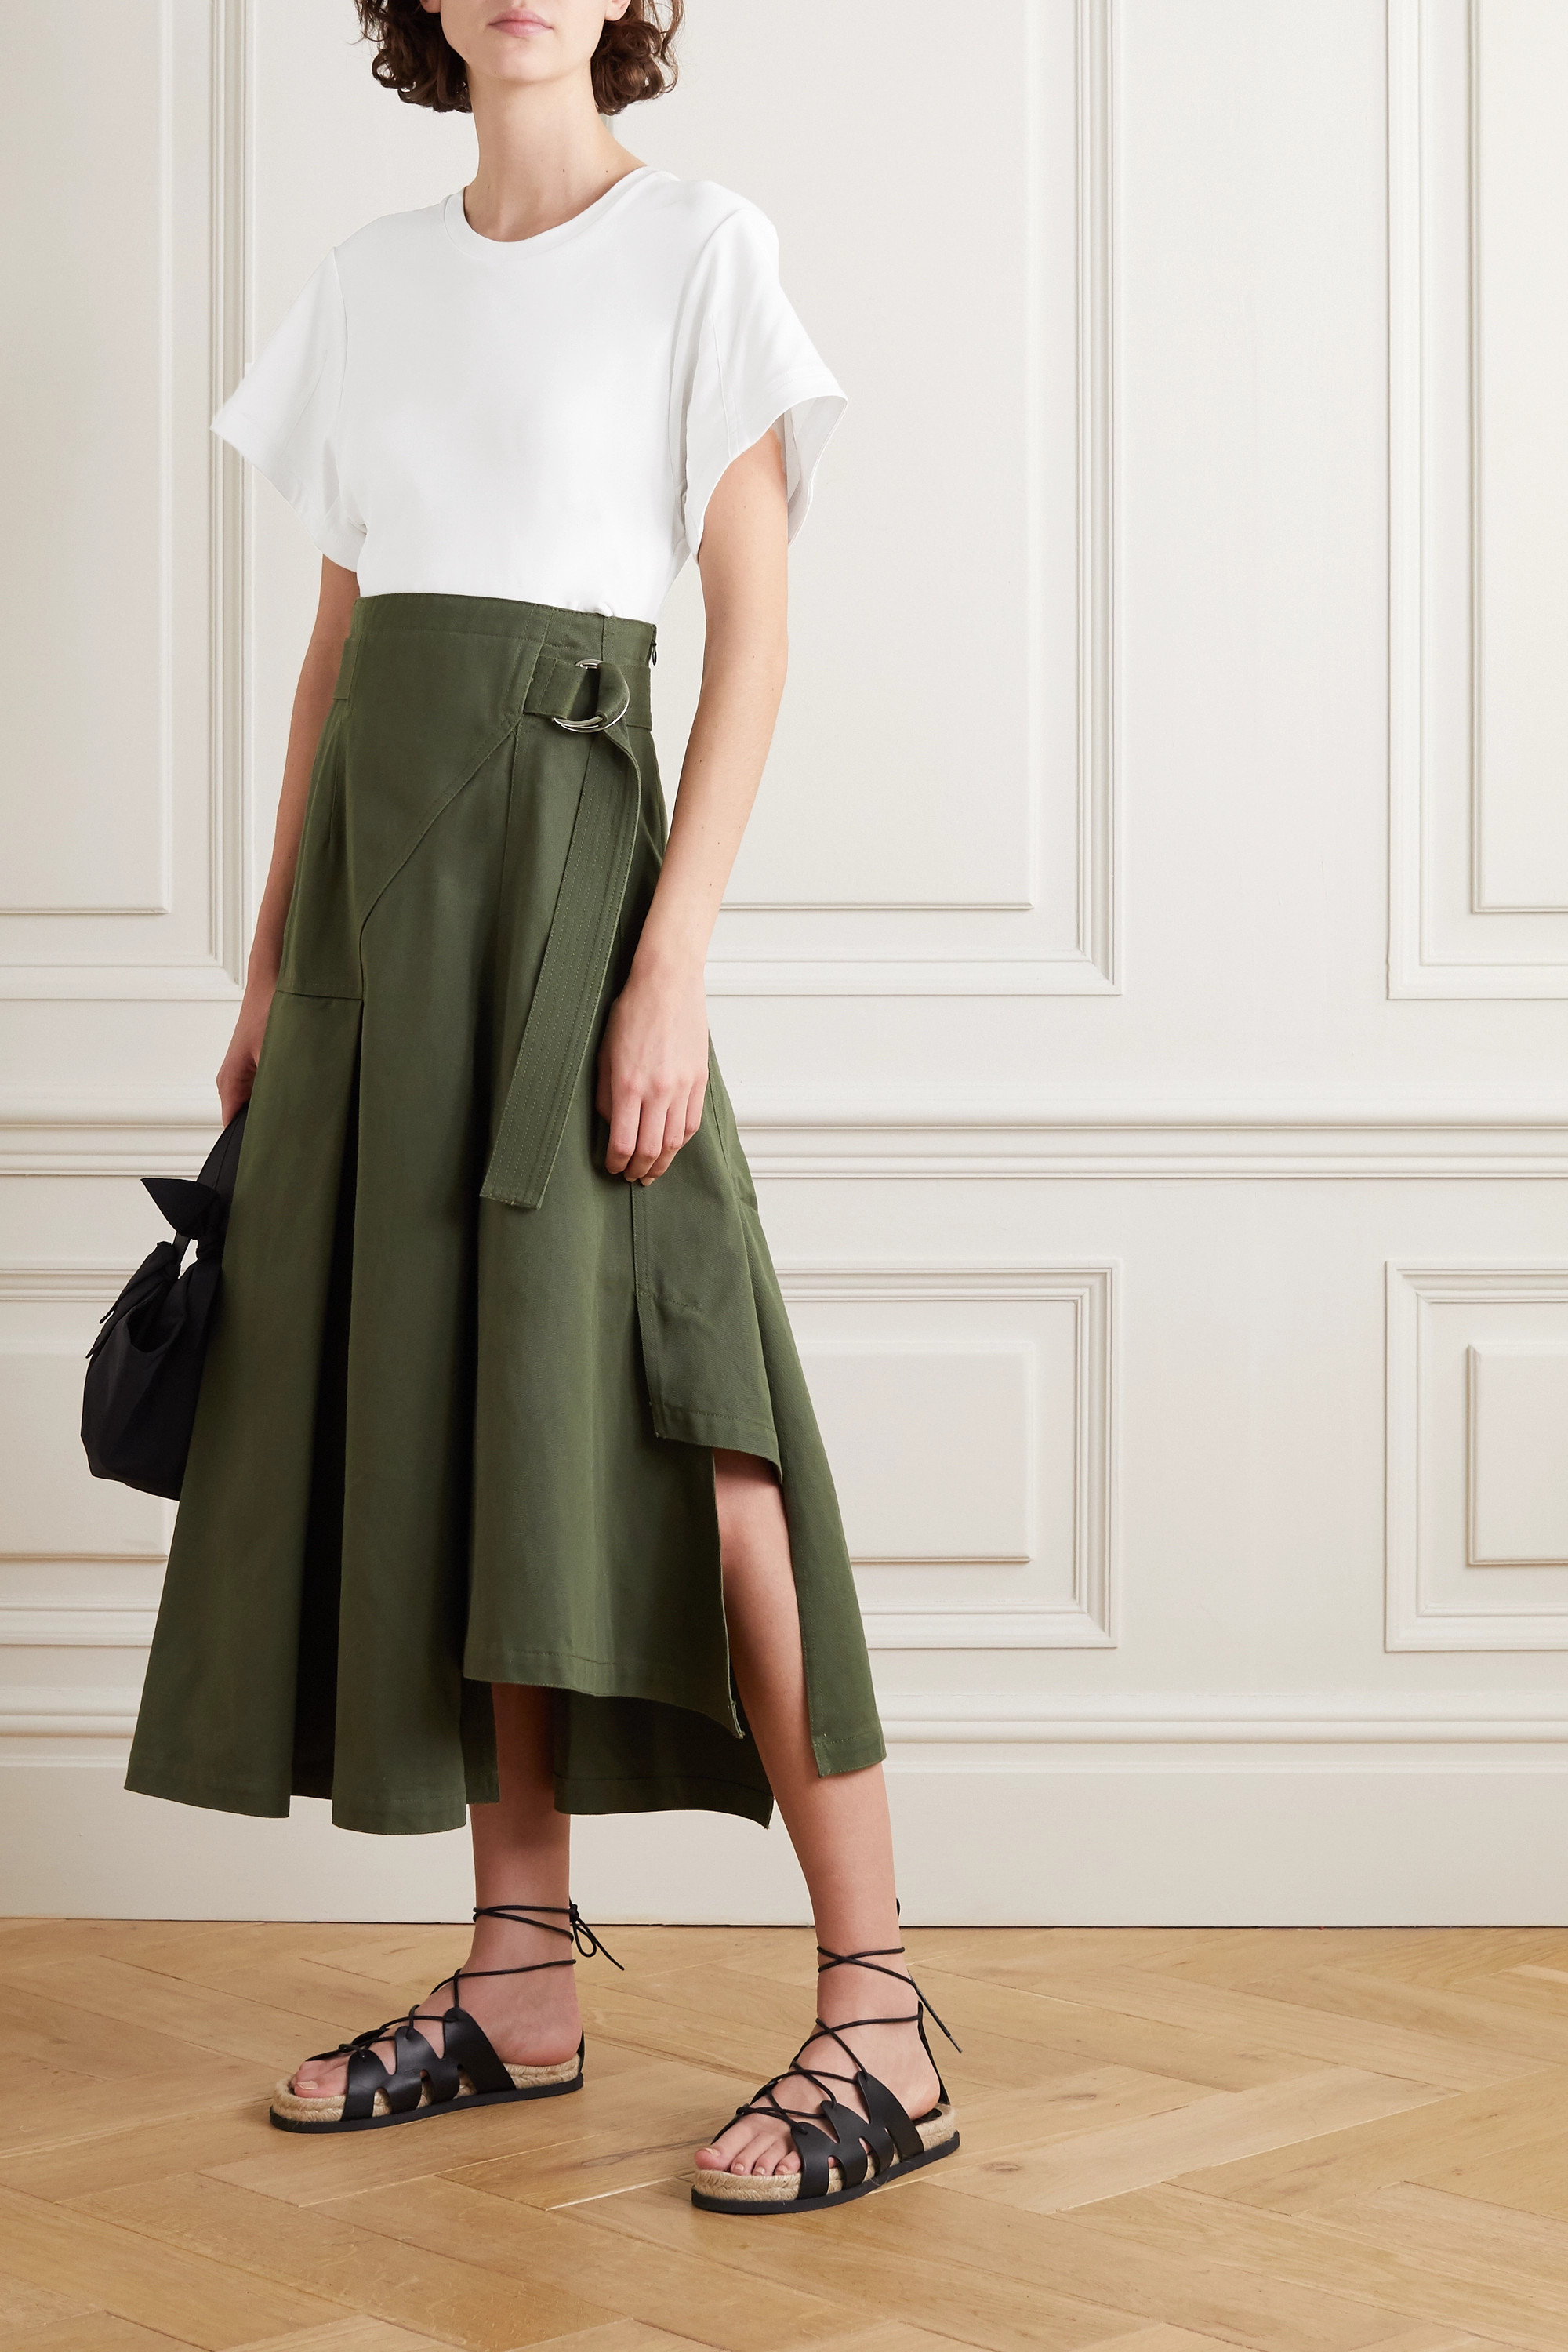 3.1 Phillip Lim + Space for Giants belted pleated organic cotton-jersey and twill midi dress